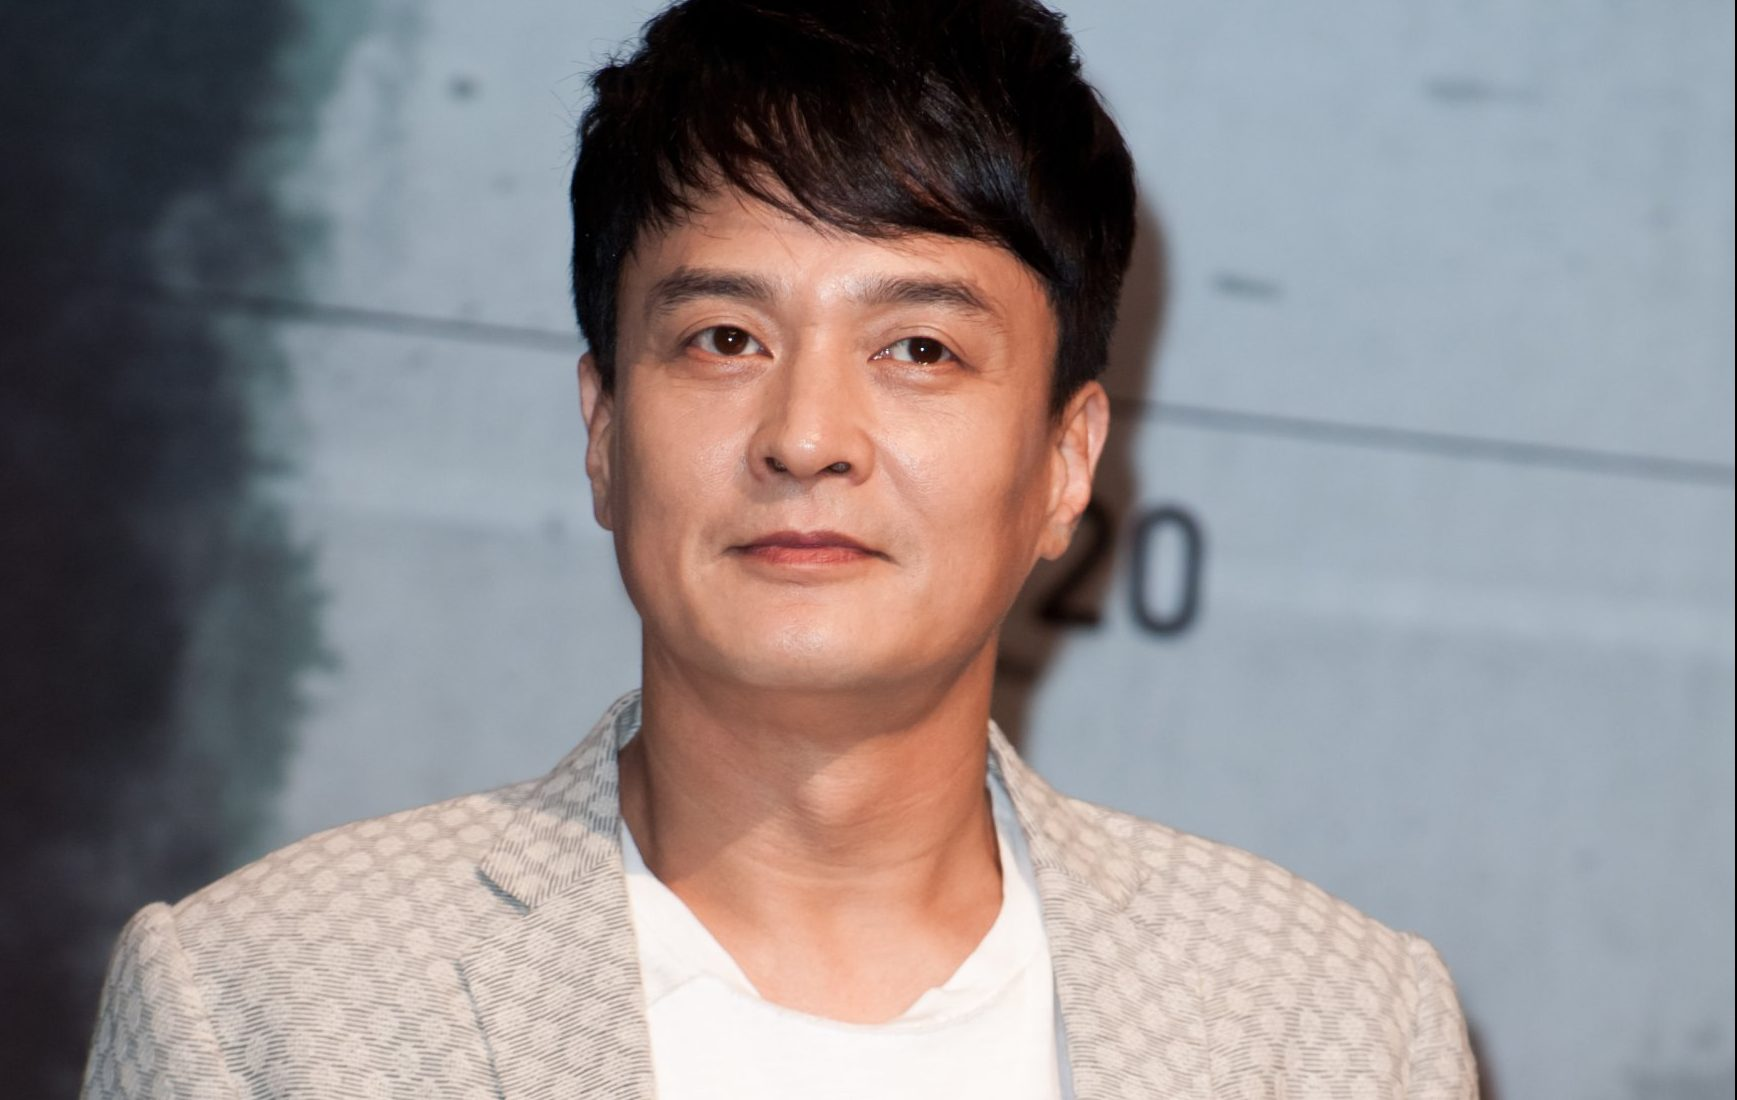 SEOUL, SOUTH KOREA - JULY 31: Jo Min-Ki attends the MBC Drama '2 Weeks' press conference at Heritz on July 31, 2013 in Seoul, South Korea. (Photo by Choi Soo-Young/Multi-Bits via Getty Images)